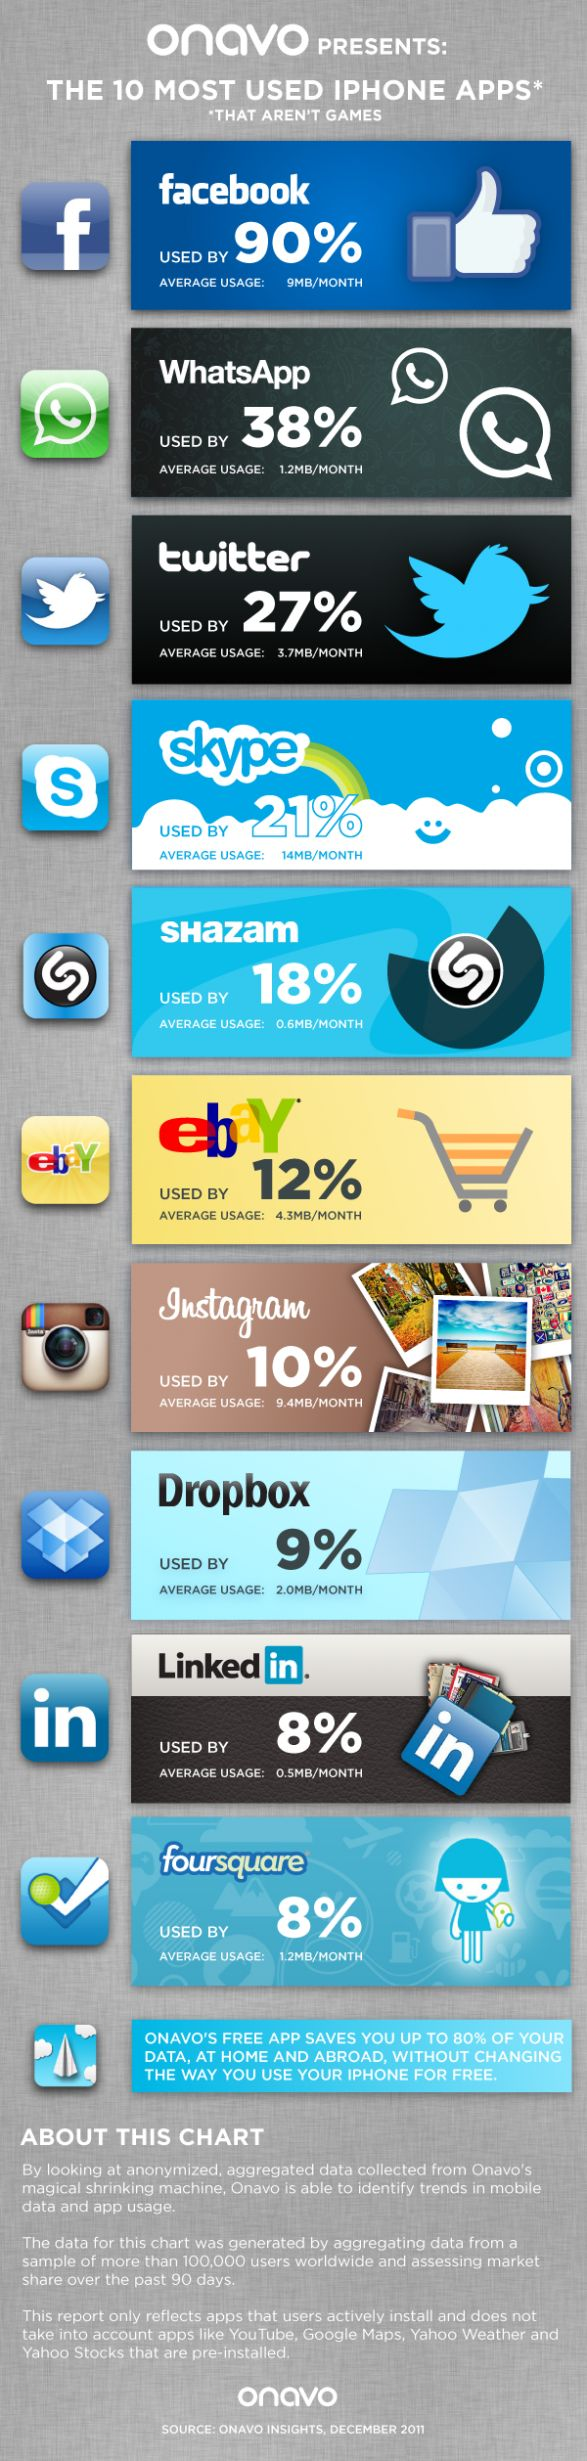 best data usage app on iphone